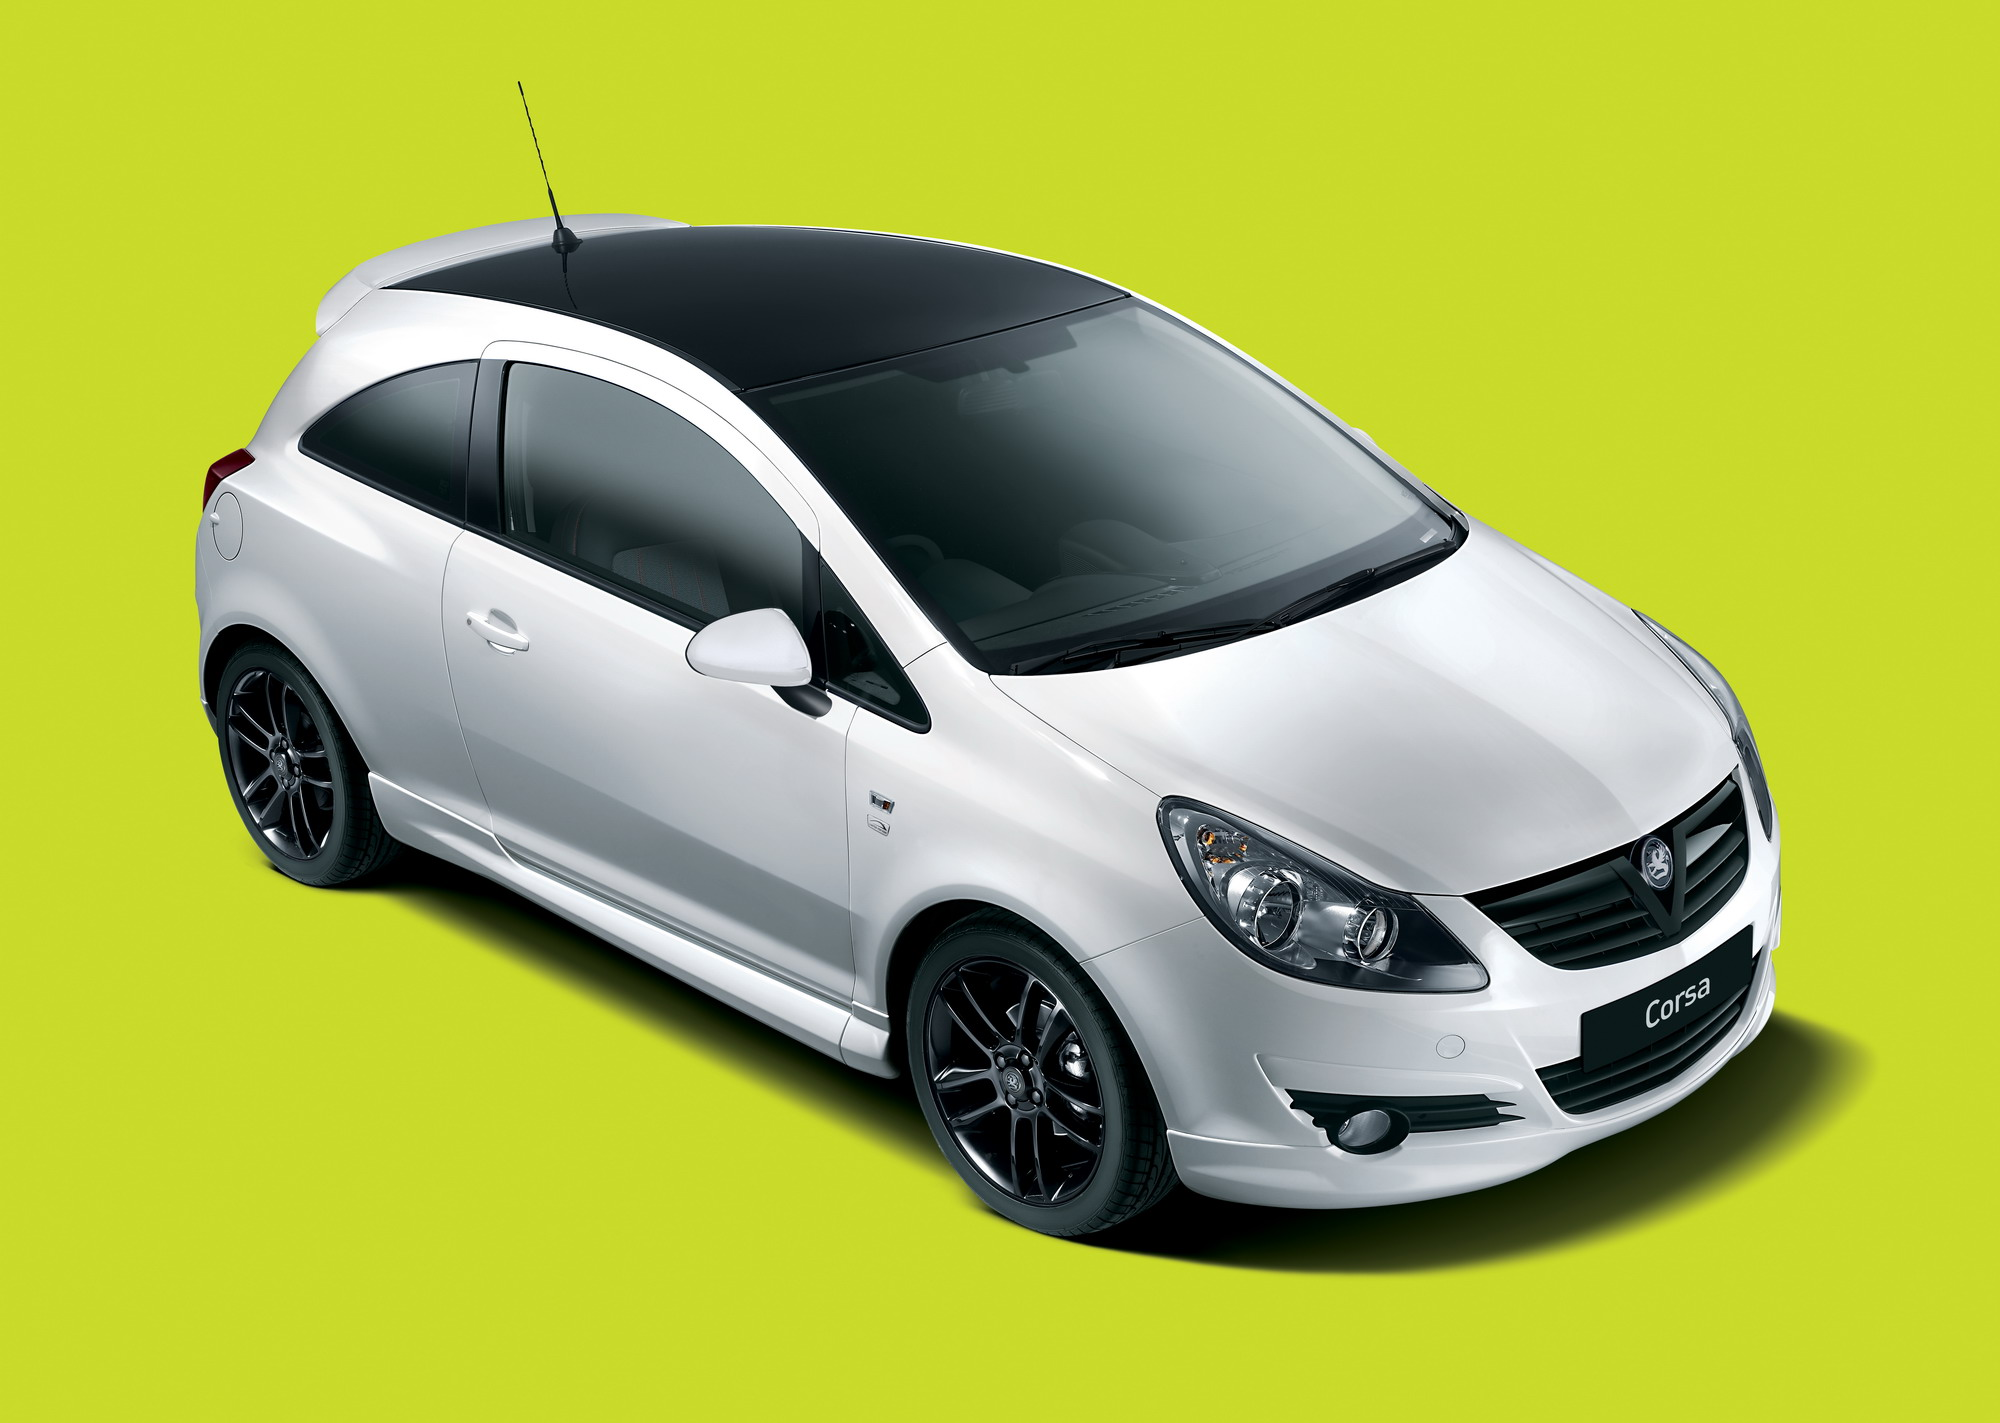 2010 vauxhall corsa black and white limited edition top speed. Black Bedroom Furniture Sets. Home Design Ideas